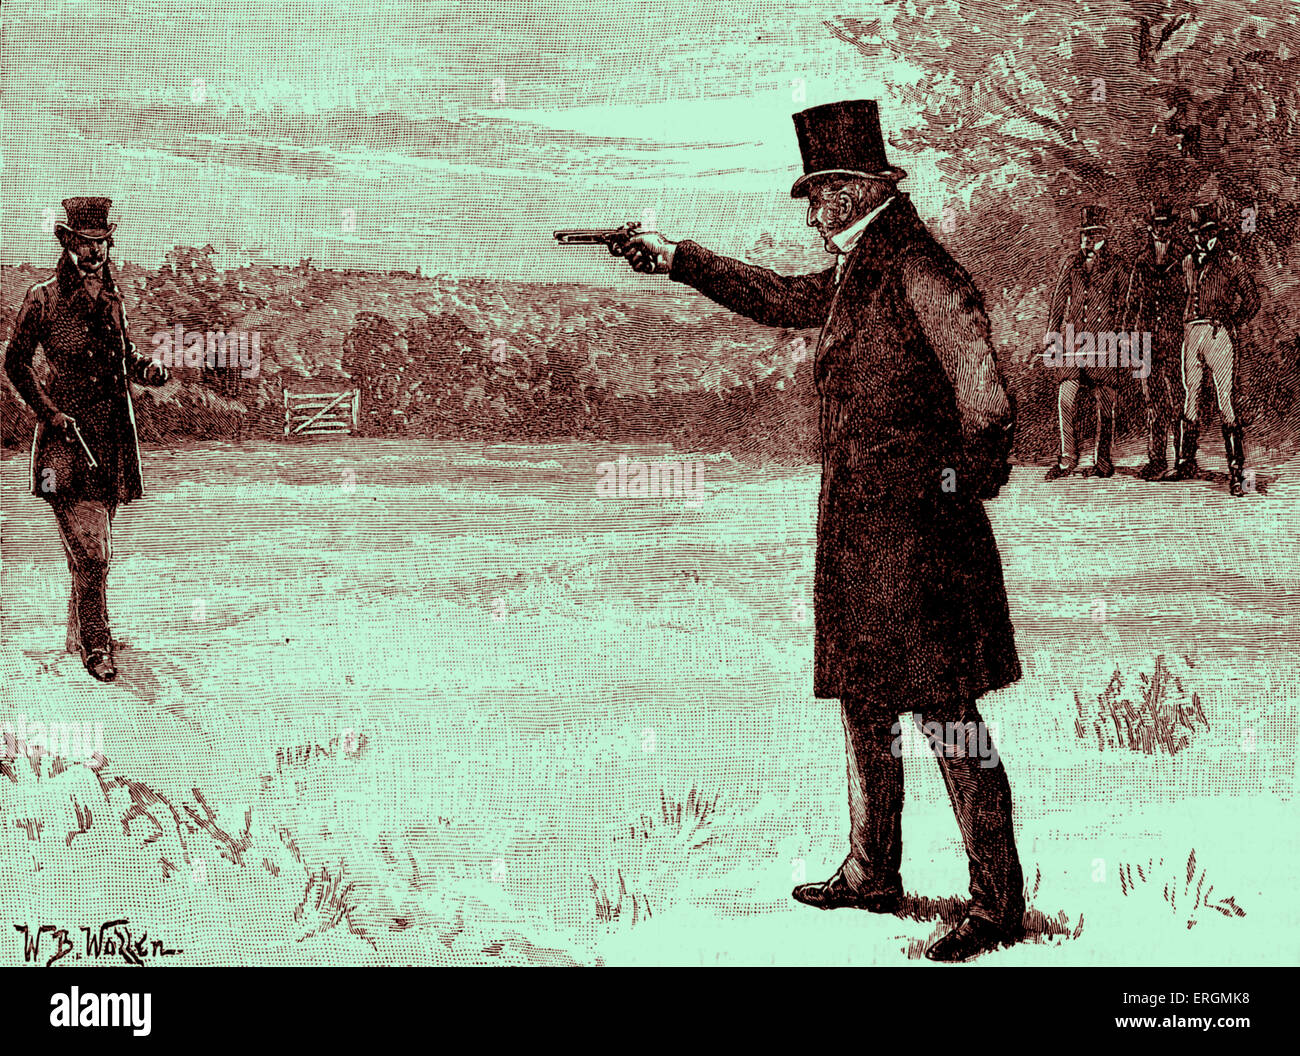 Duke of Wellington 's Duel with George Finch-Hatton, 10th Earl of Winchilsea. Battersea Fields on, 21 March - Stock Image